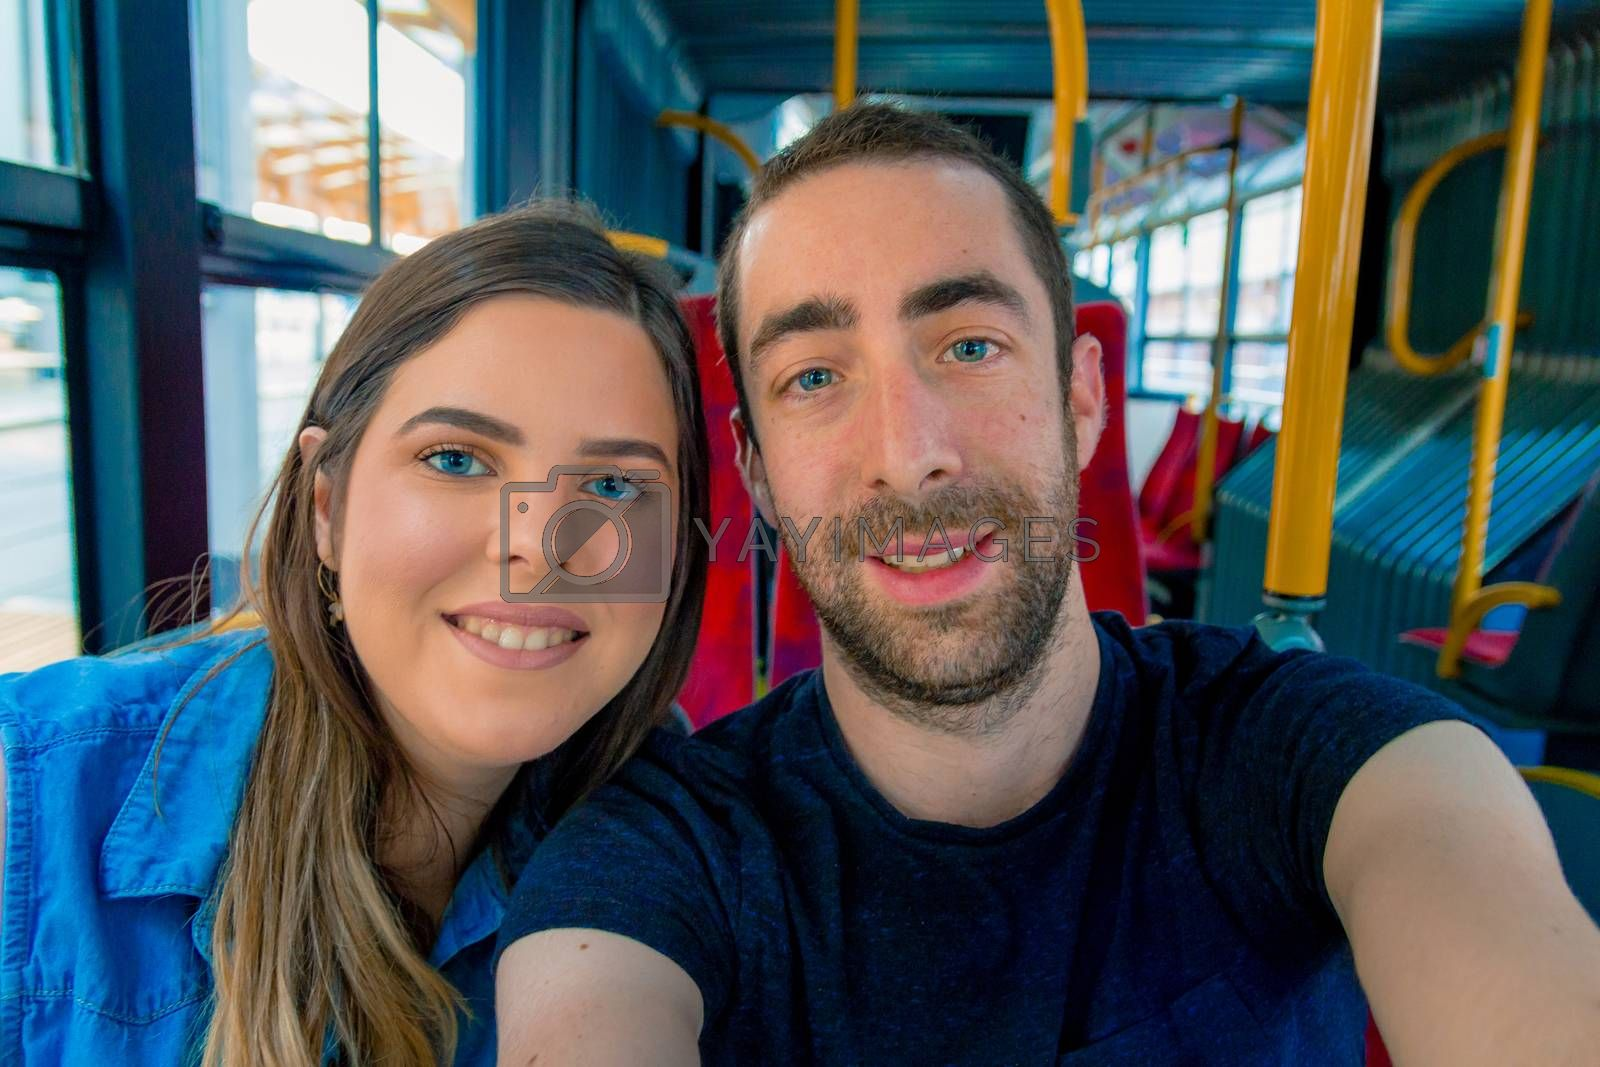 Happy couple taking a selfie with smartphone or camera inside a city bus.